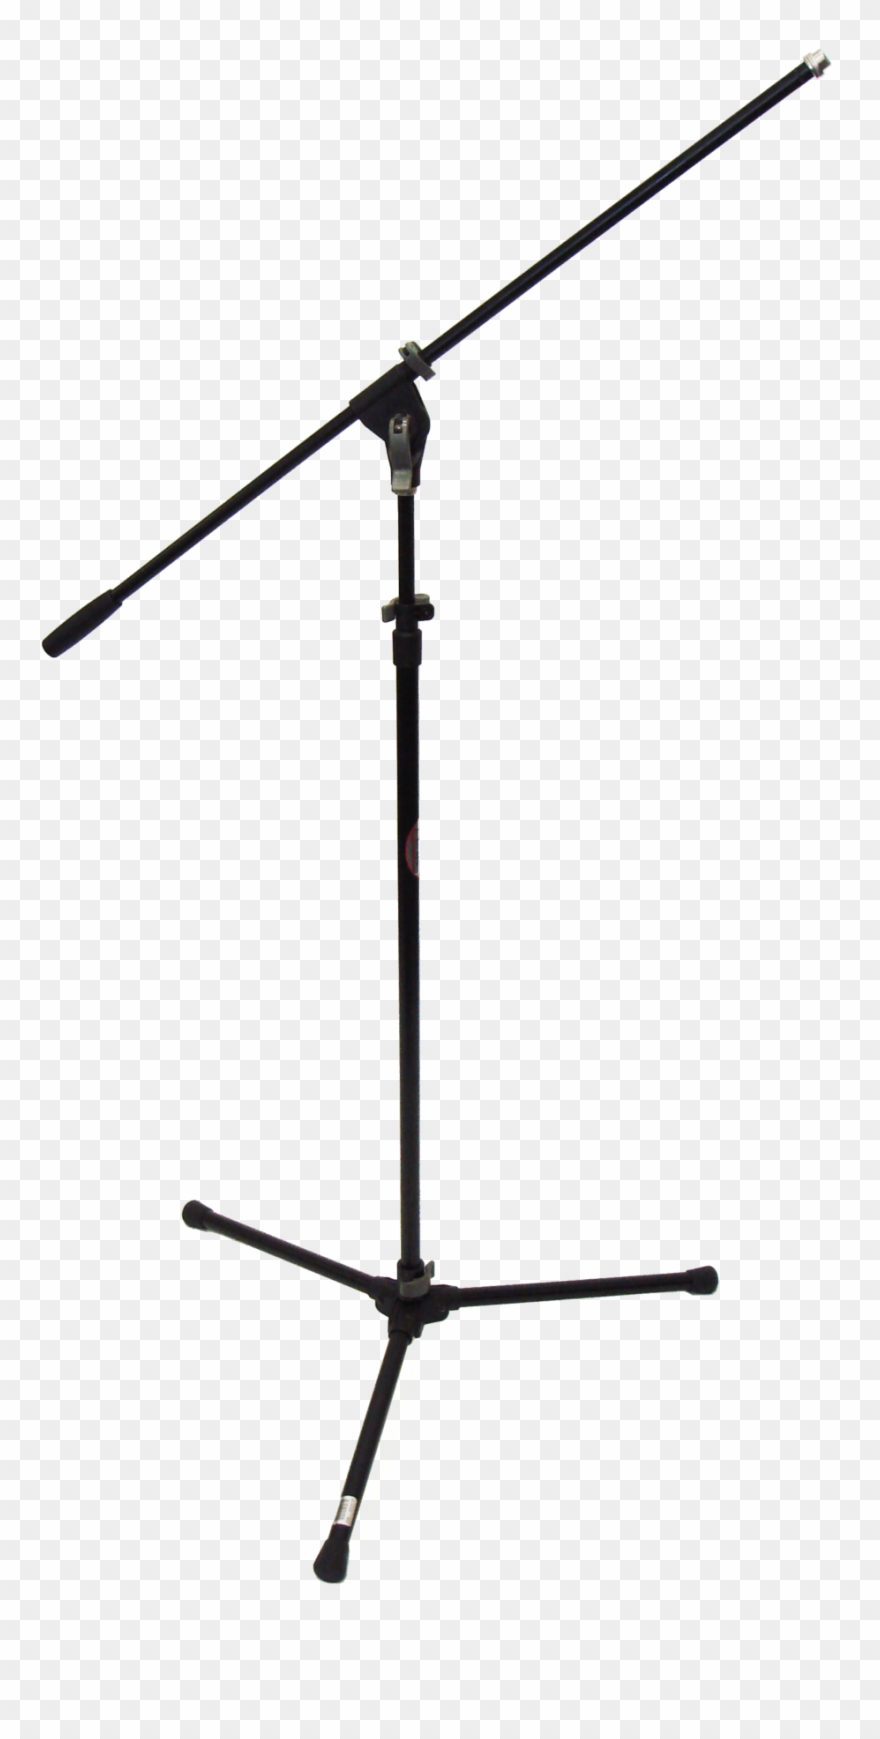 Microphone Stand Png.